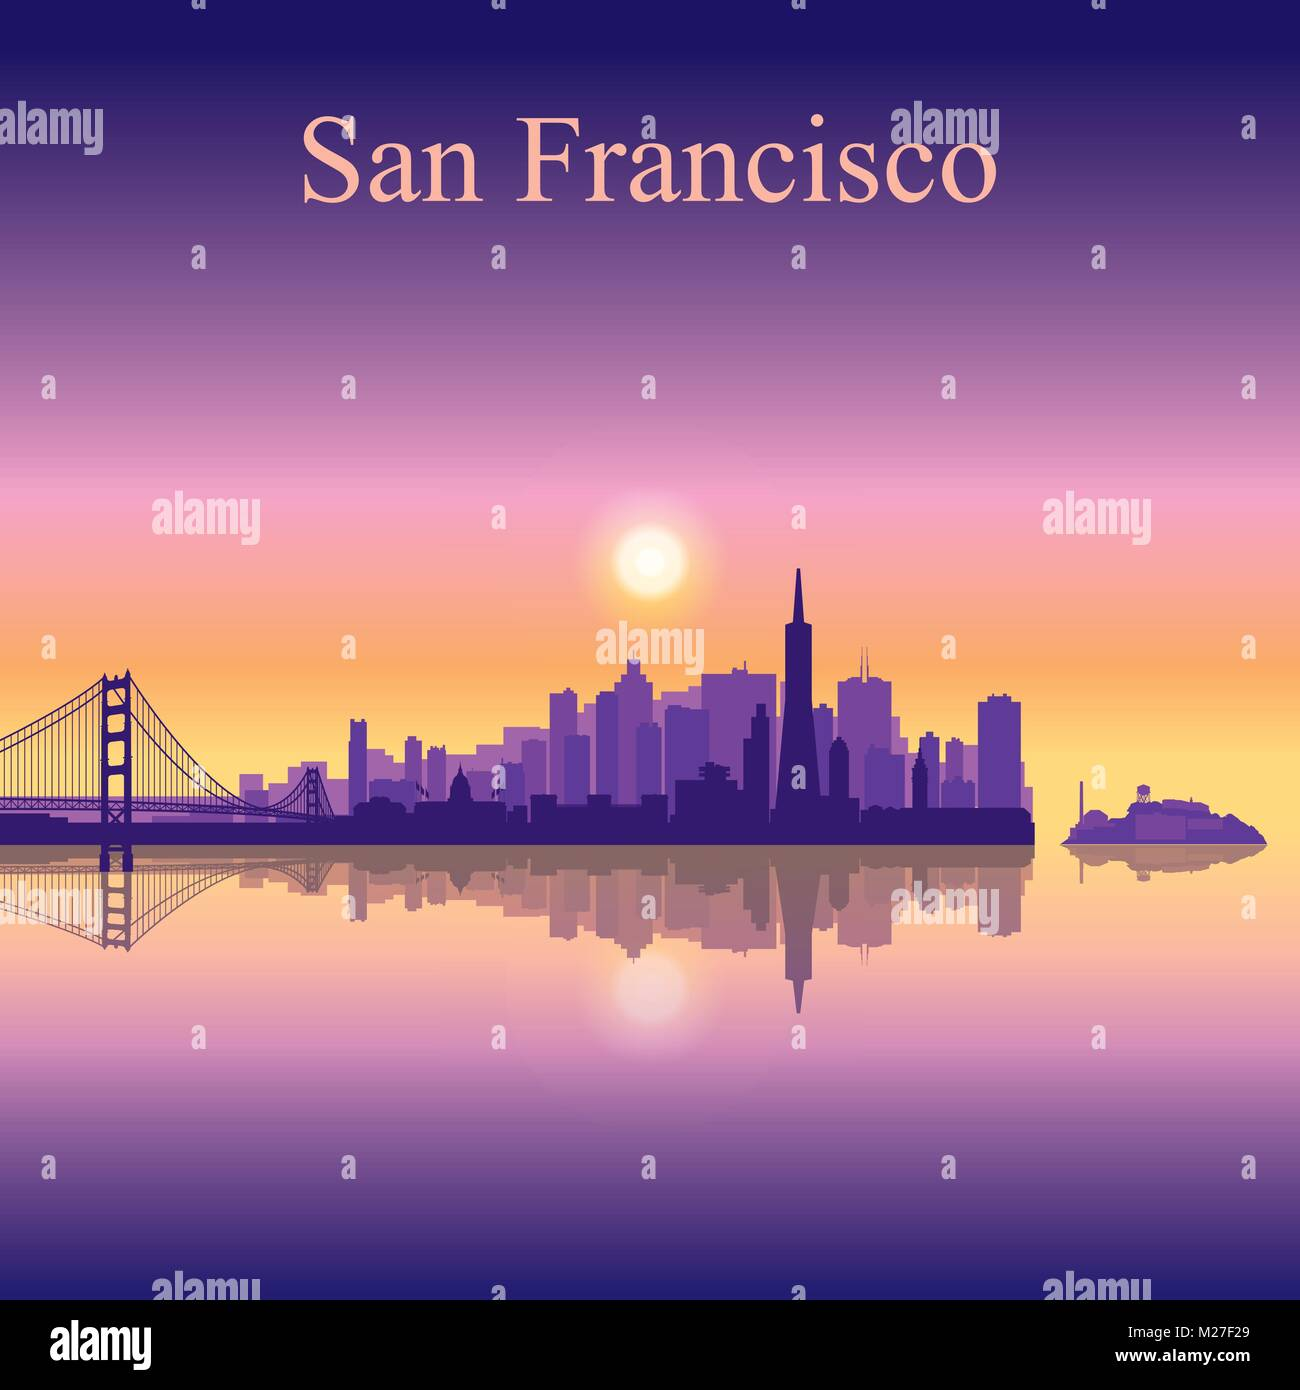 San Francisco city skyline silhouette background, vector illustration - Stock Image